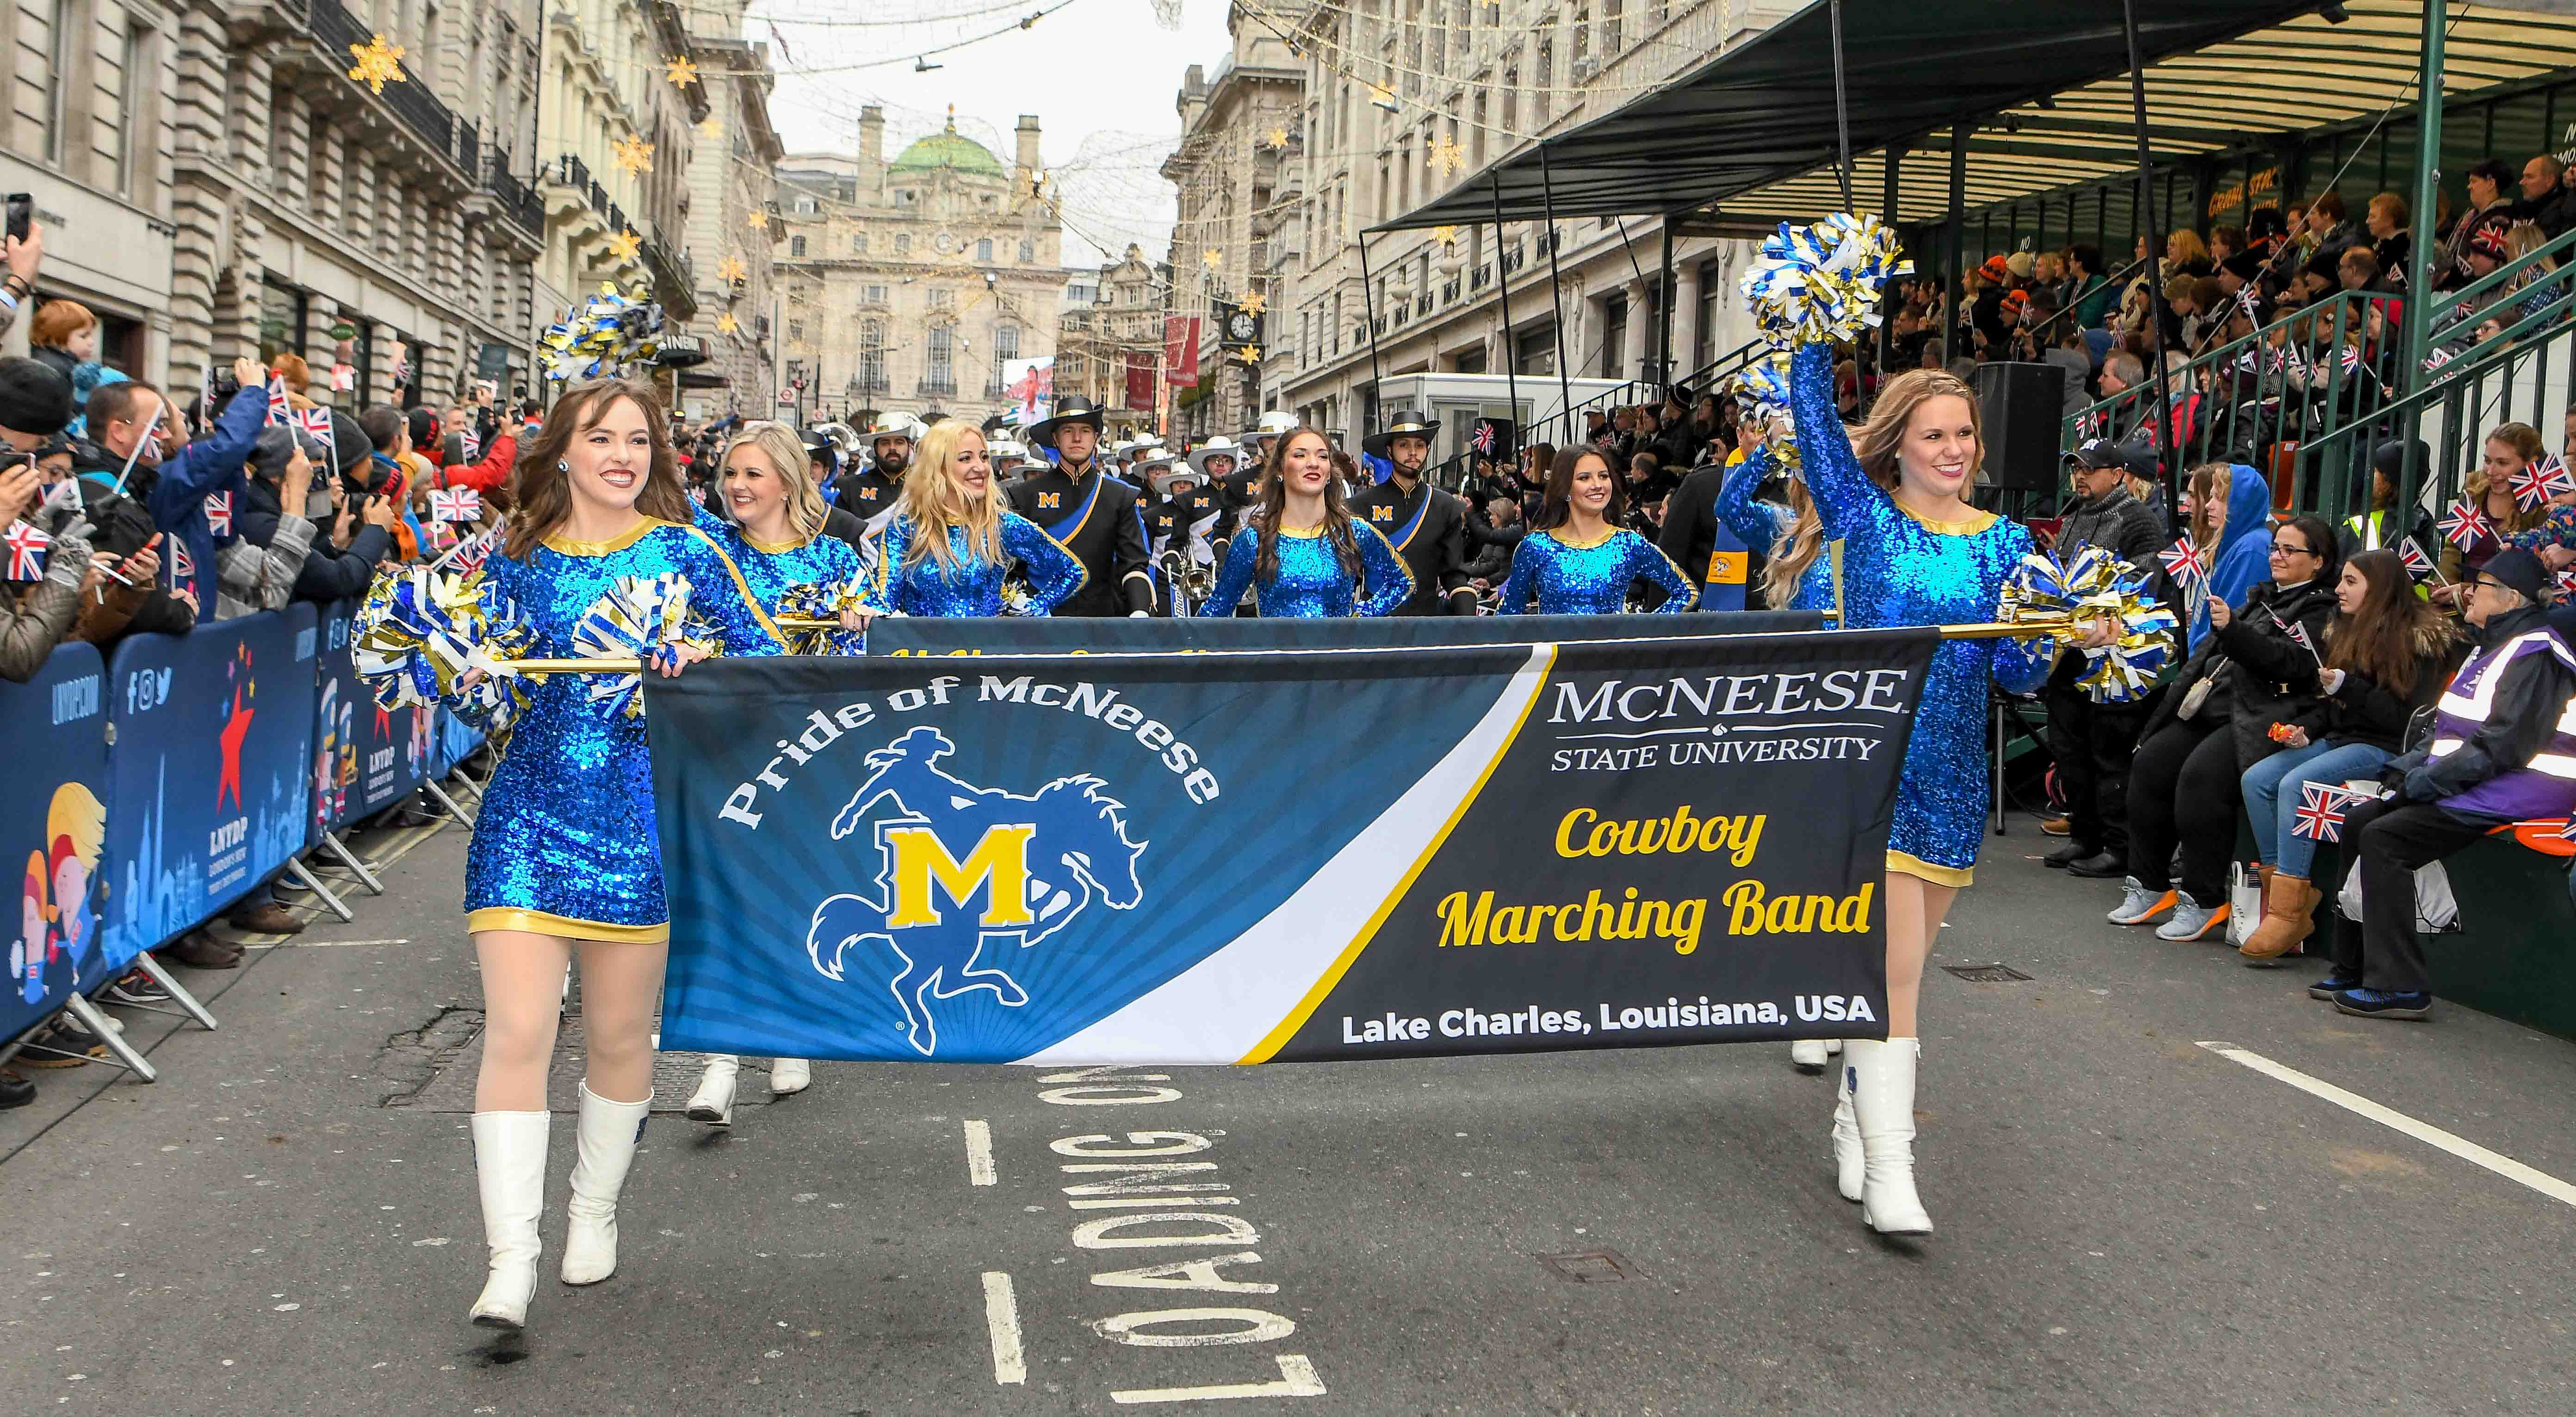 The McNeese Band and Cowgirl Kickers walk the streets of London in the parade.